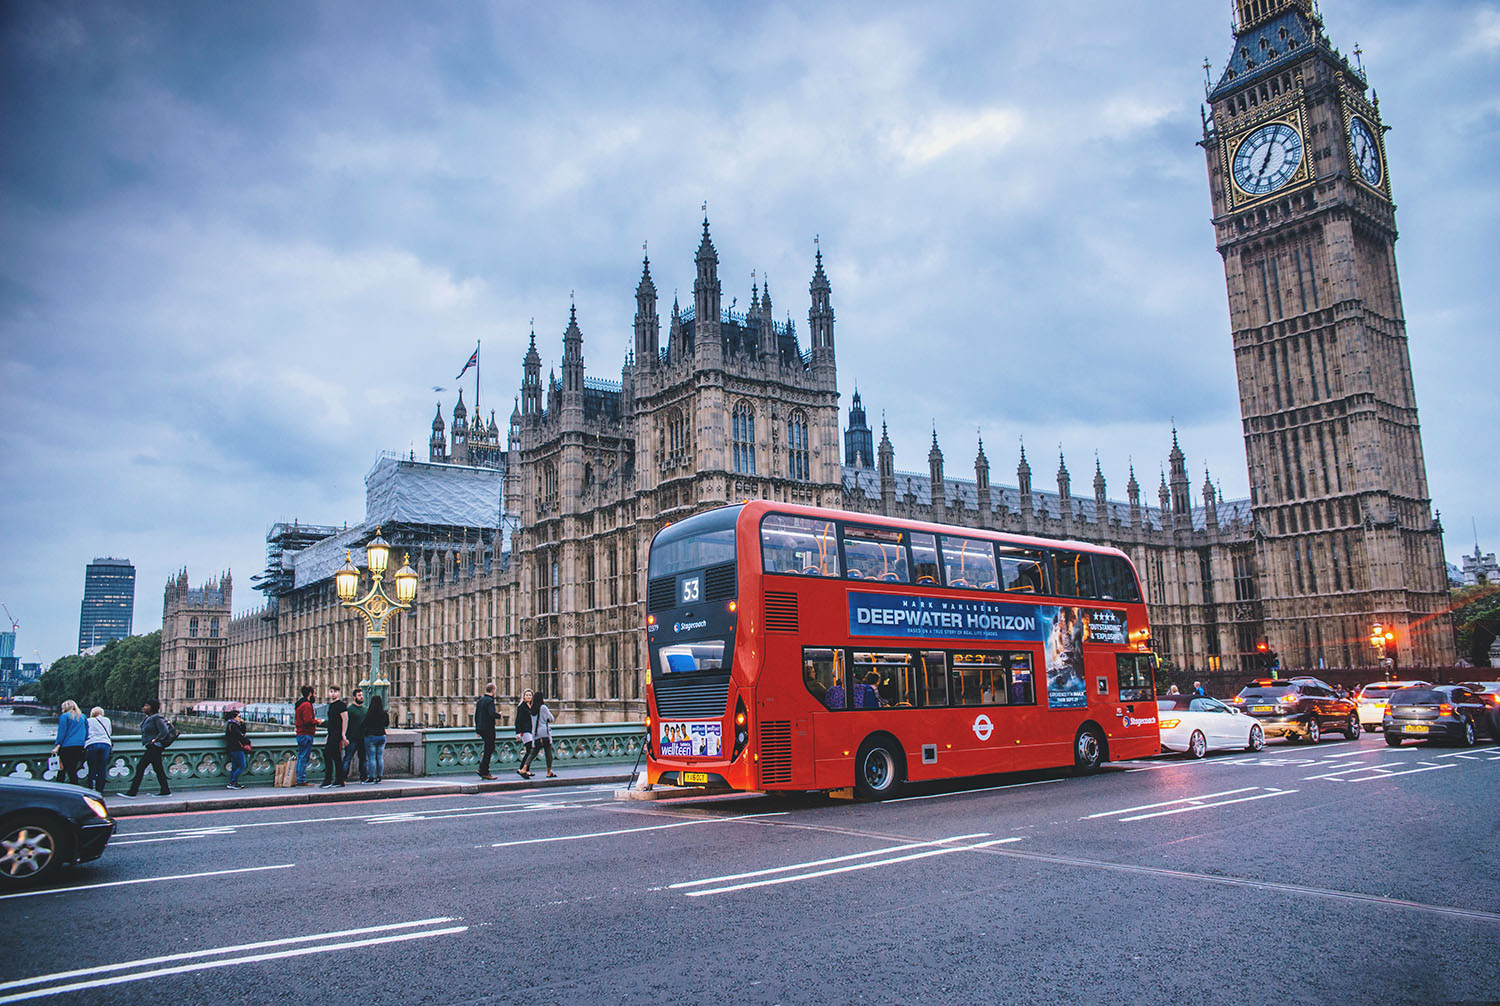 Westminister, London - A red bus & Big Ben